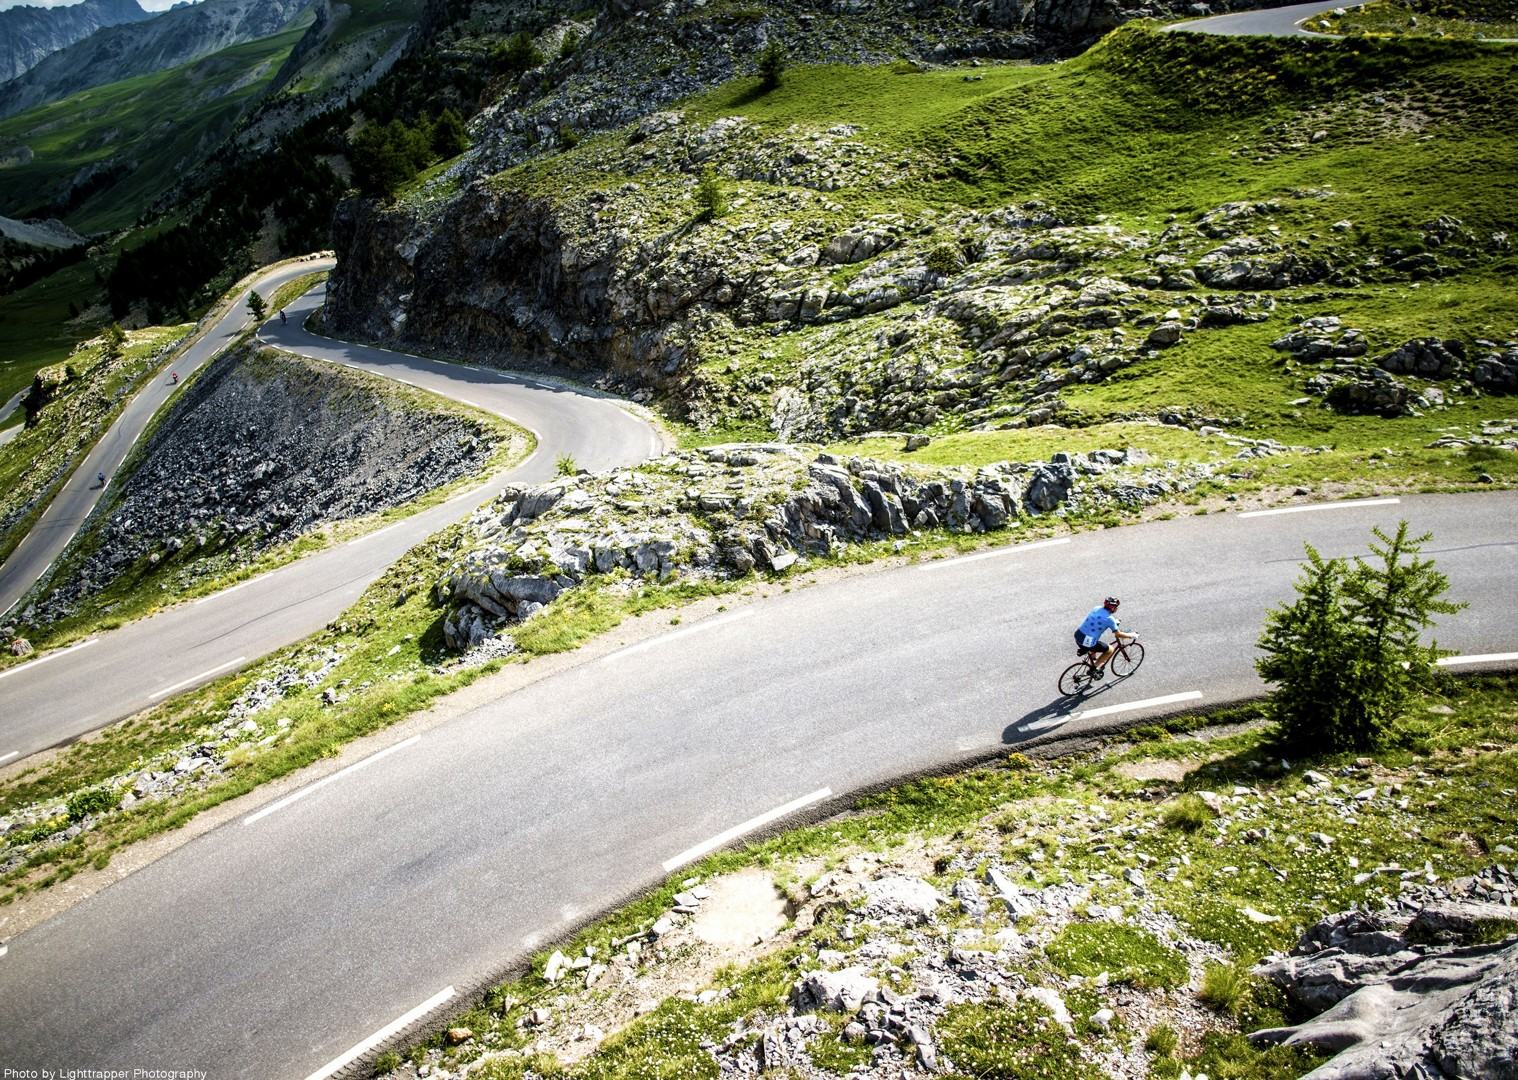 col-france-road-downhill-alpes-cycle.jpg - France - Provence - Alpes Maritimes - Guided Road Cycling Holiday - Road Cycling